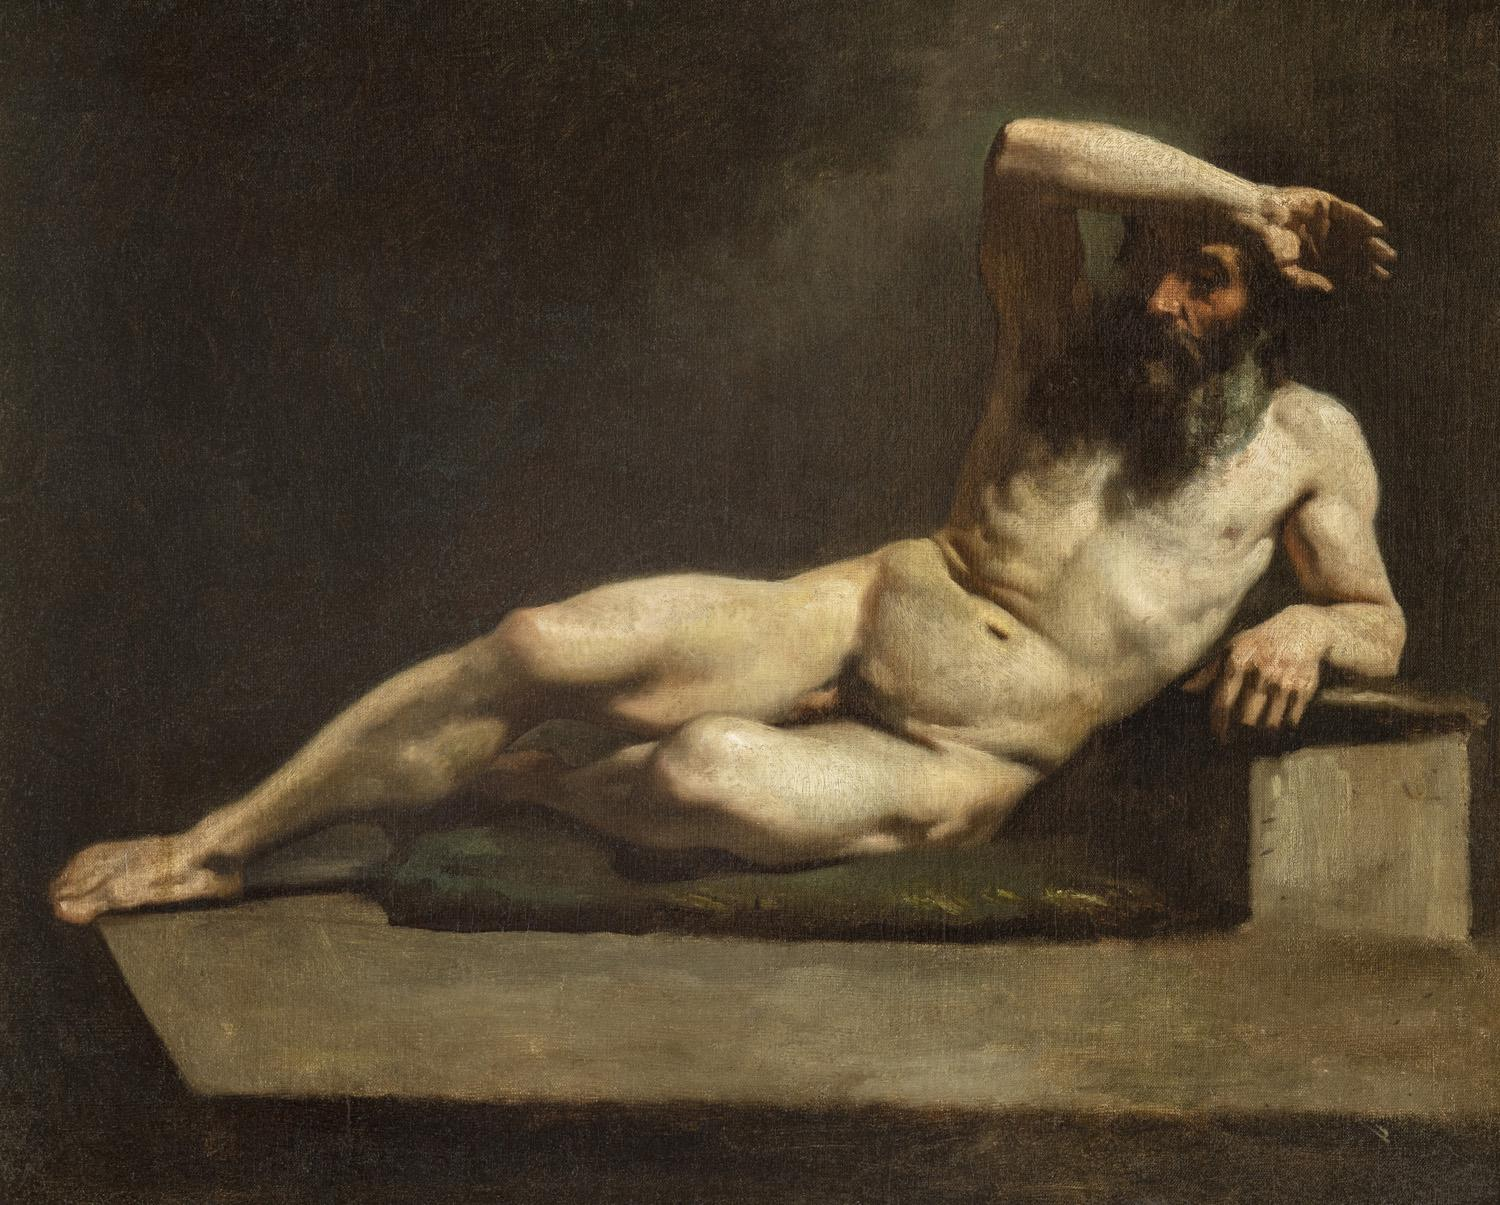 Michele Cammarano Old Male Nude Portrait Painting 1860s Oil canvas